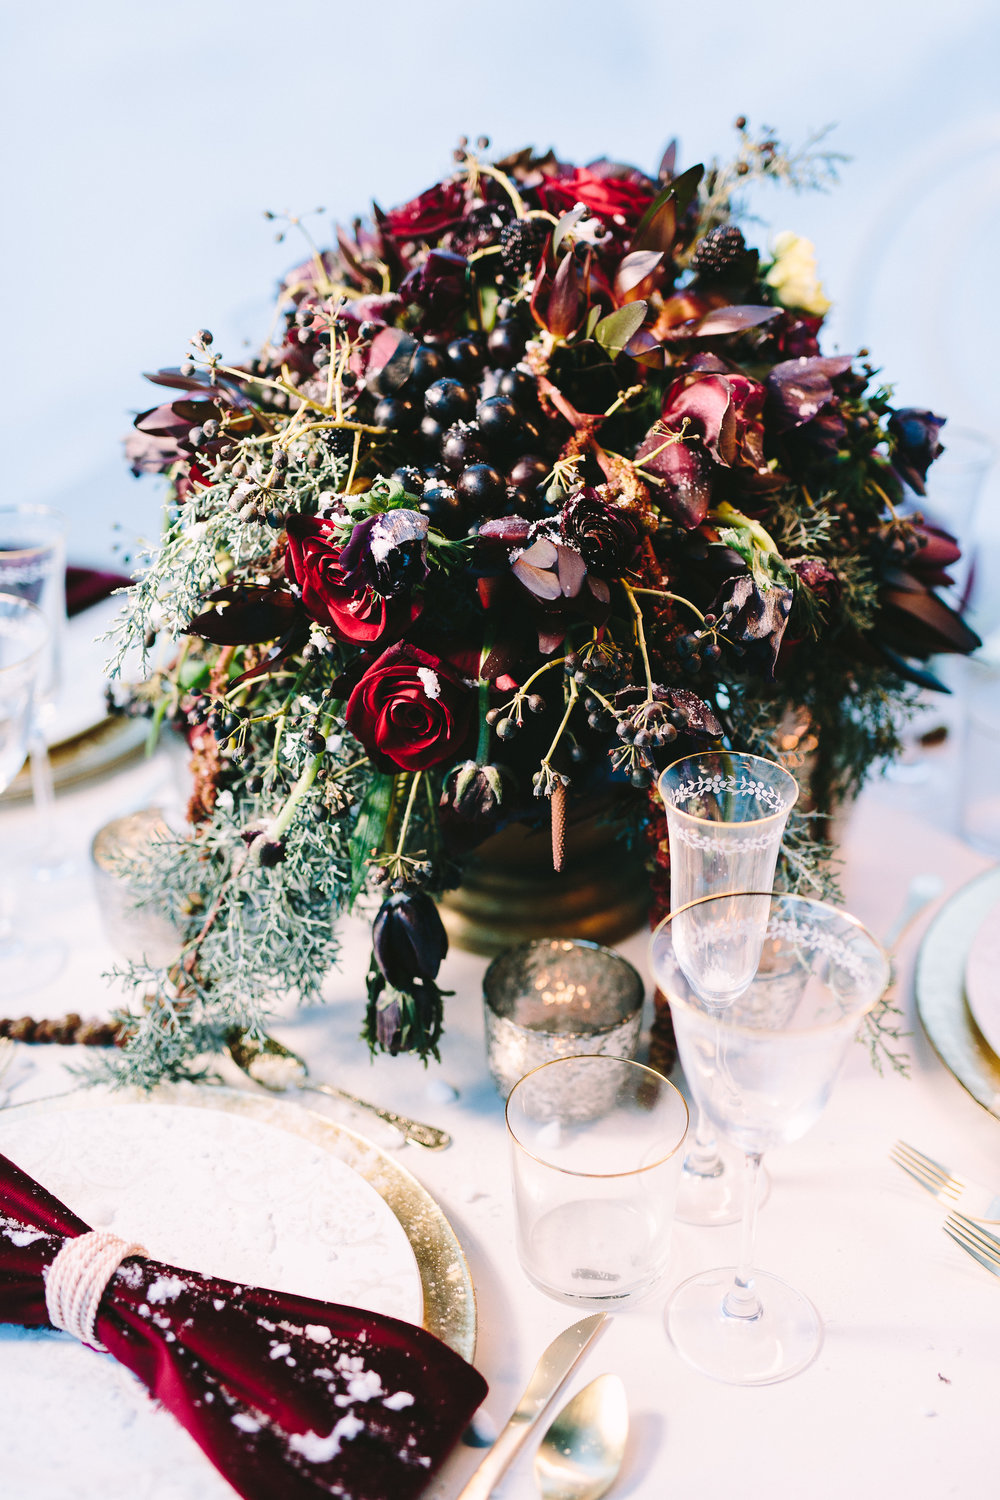 styled-shoot-winter-elatos-resort-greece-destination-wedding-table-luxury-chic-burgundy-white-gold-ring-napkin